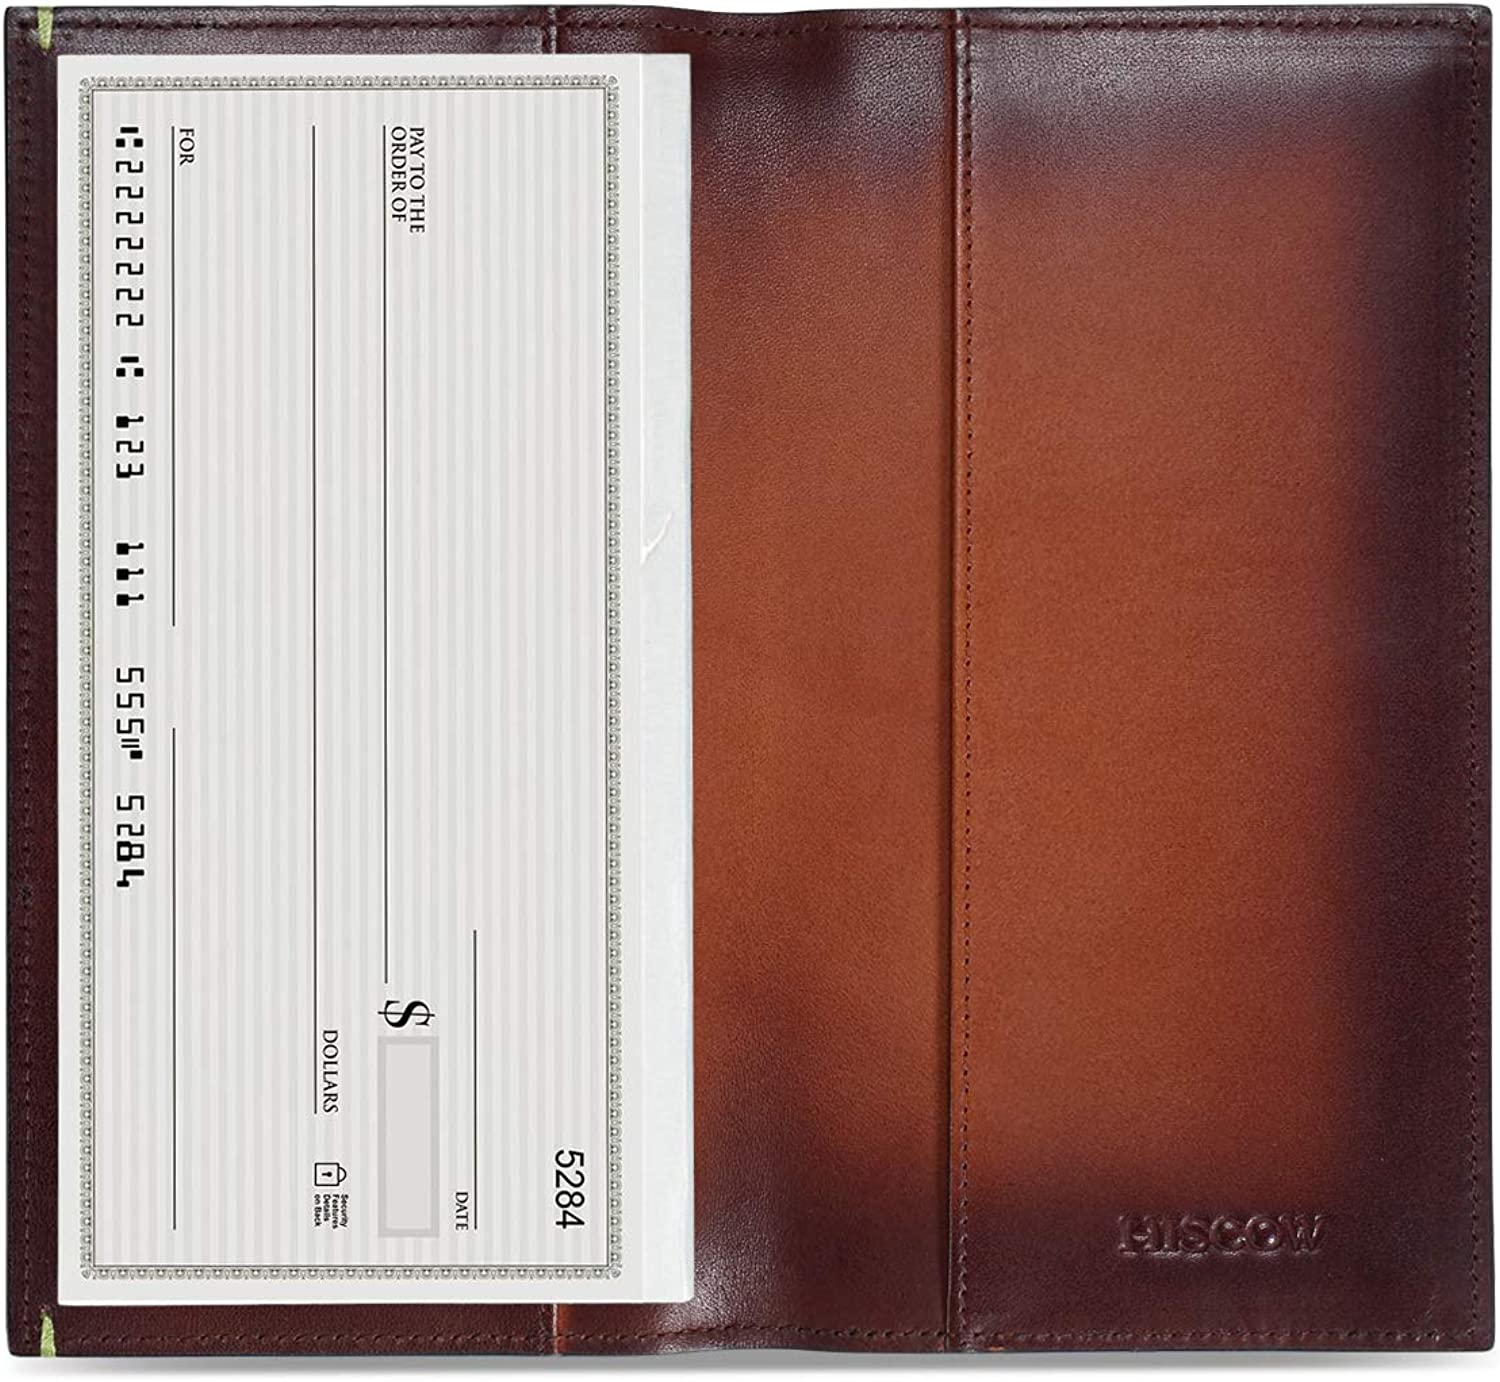 HISCOW Classy Standard Checkbook Cover with Free Divider  Italian Calfskin